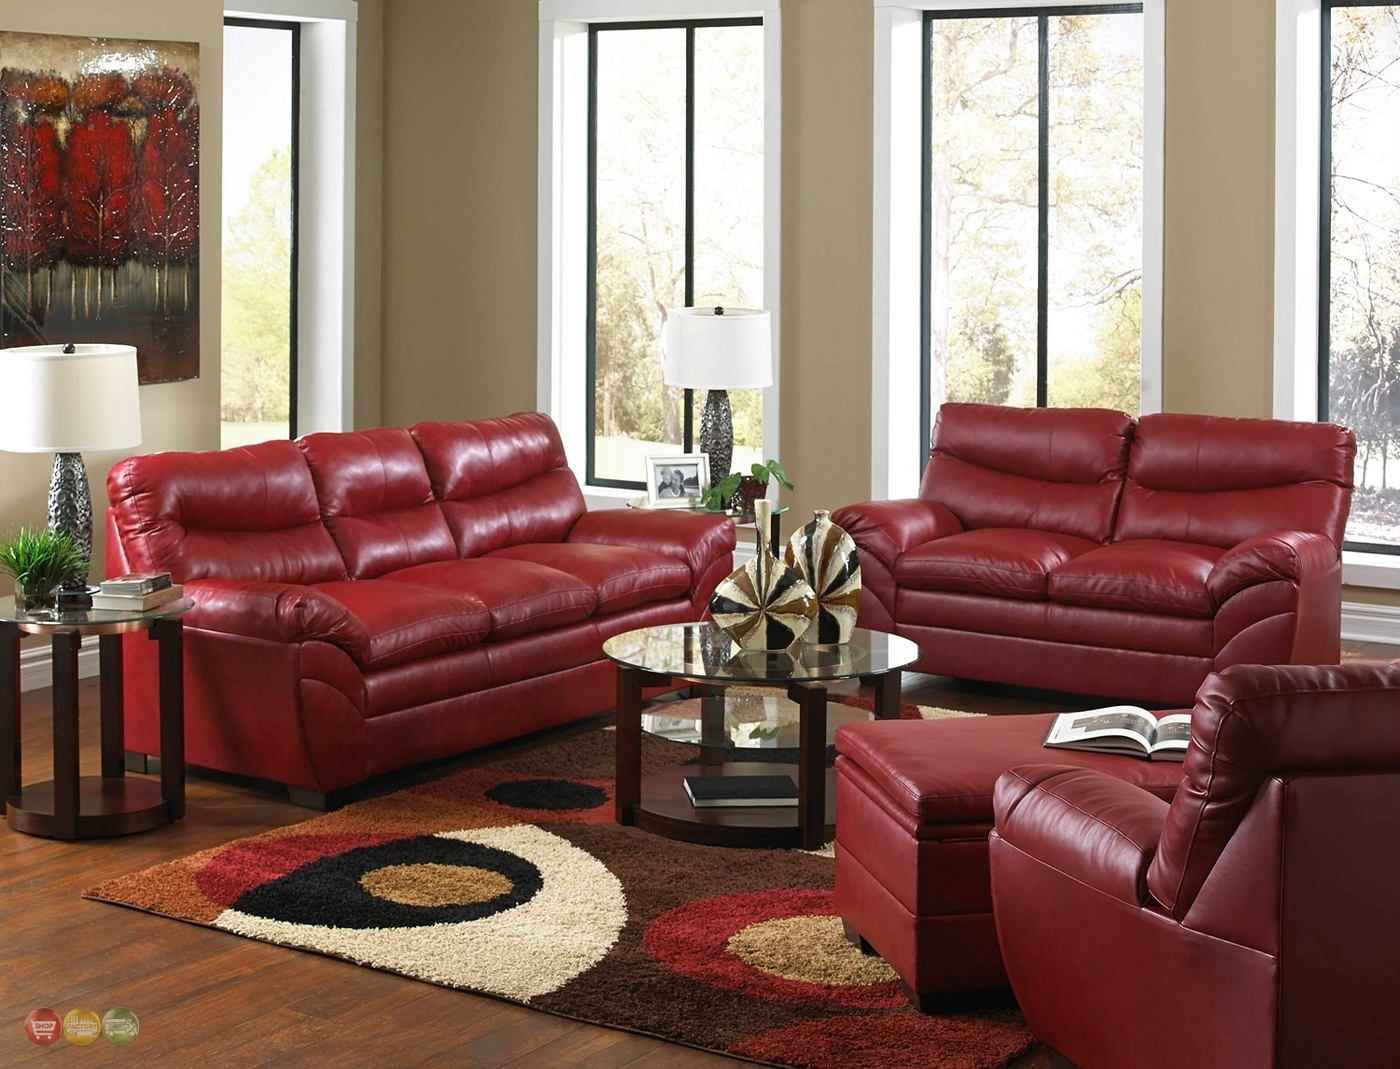 Red Leather Living Room Furniture | Living Room Decor Inside Red Leather Couches For Living Room (View 9 of 10)